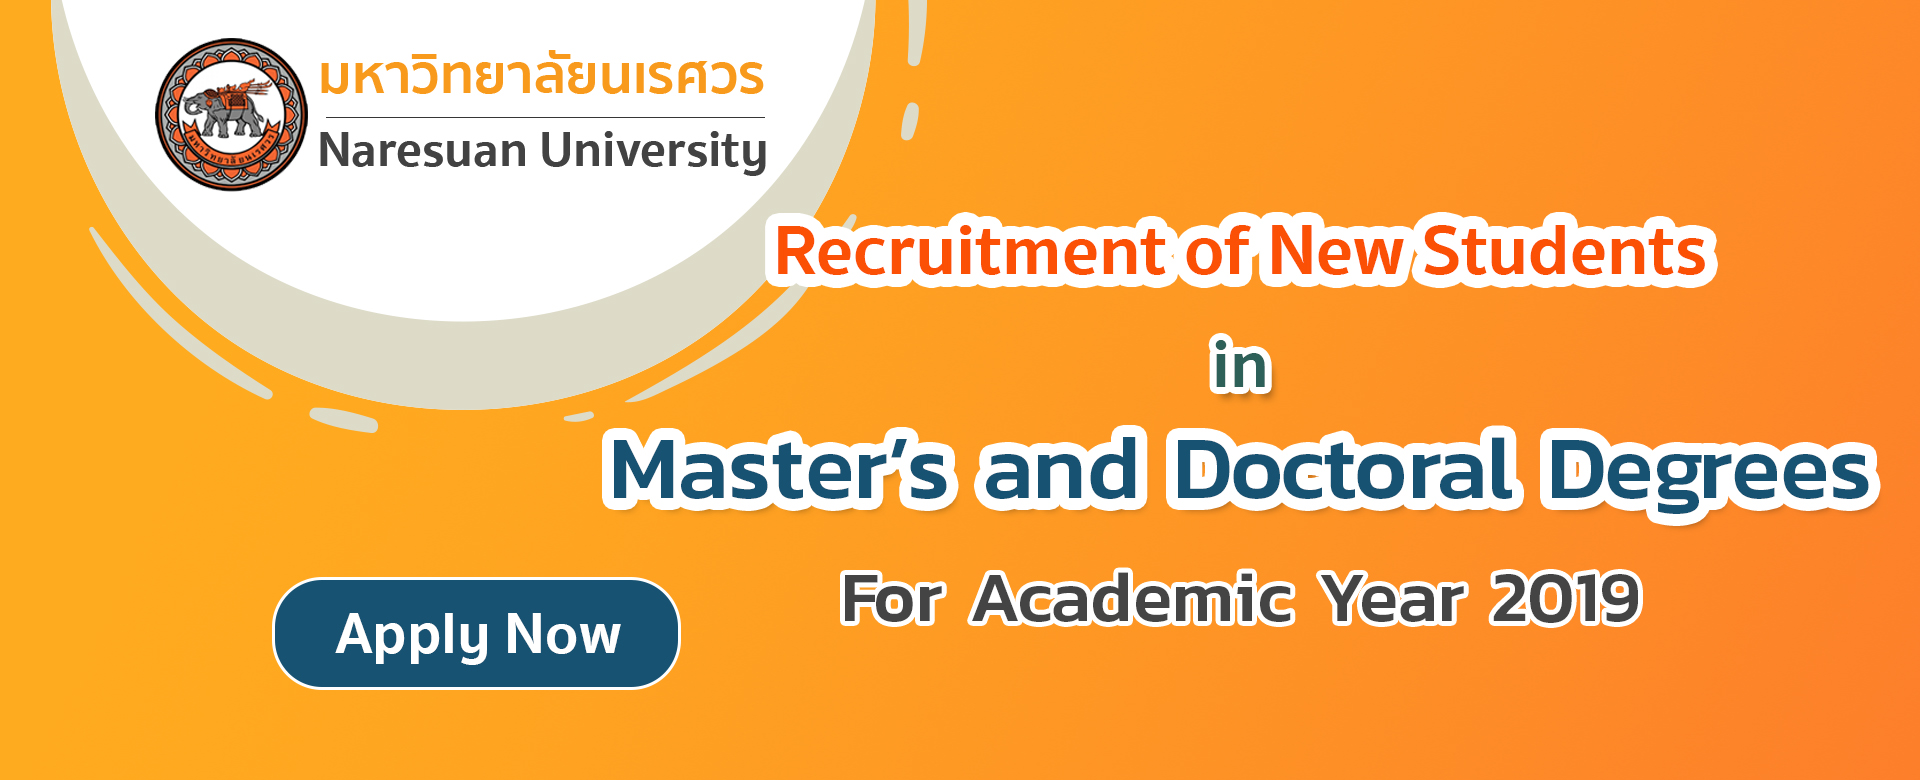 Naresuan University Recruits for New Students in Academic Year 2019